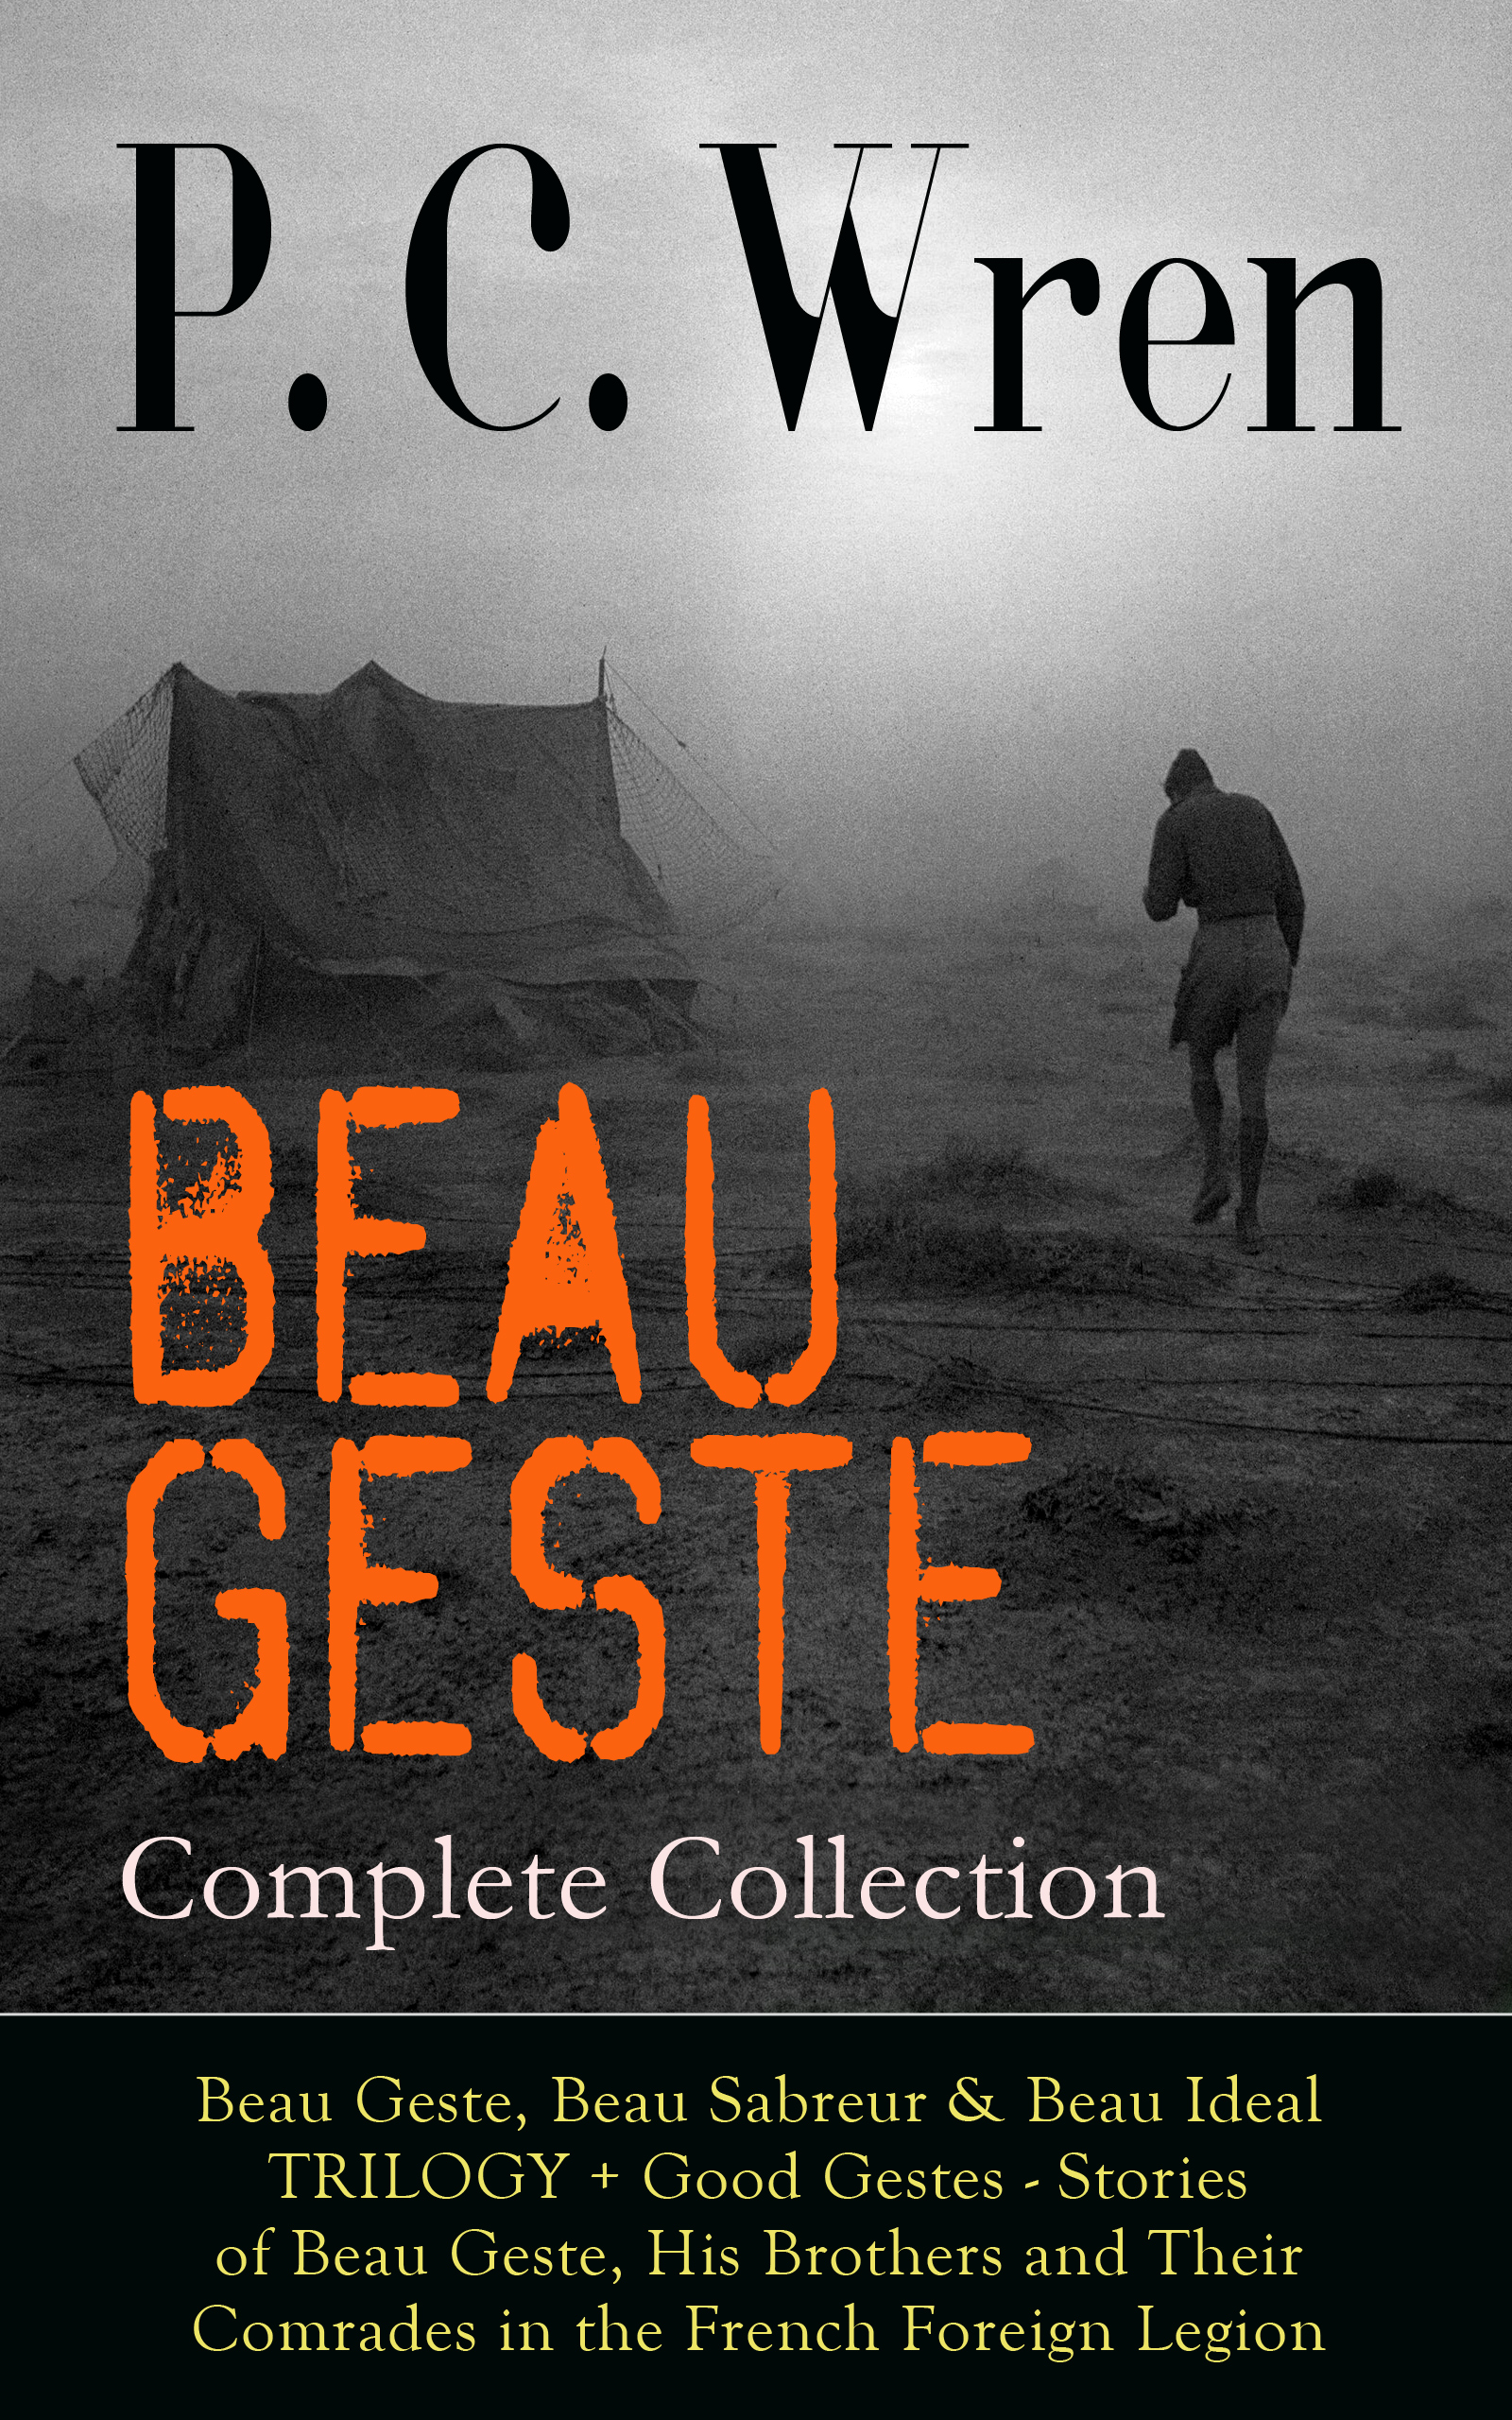 P. C. Wren BEAU GESTE - Complete Collection: Beau Geste, Beau Sabreur & Beau Ideal TRILOGY + Good Gestes - Stories of Beau Geste, His Brothers and Their Comrades in the French Foreign Legion цена 2017